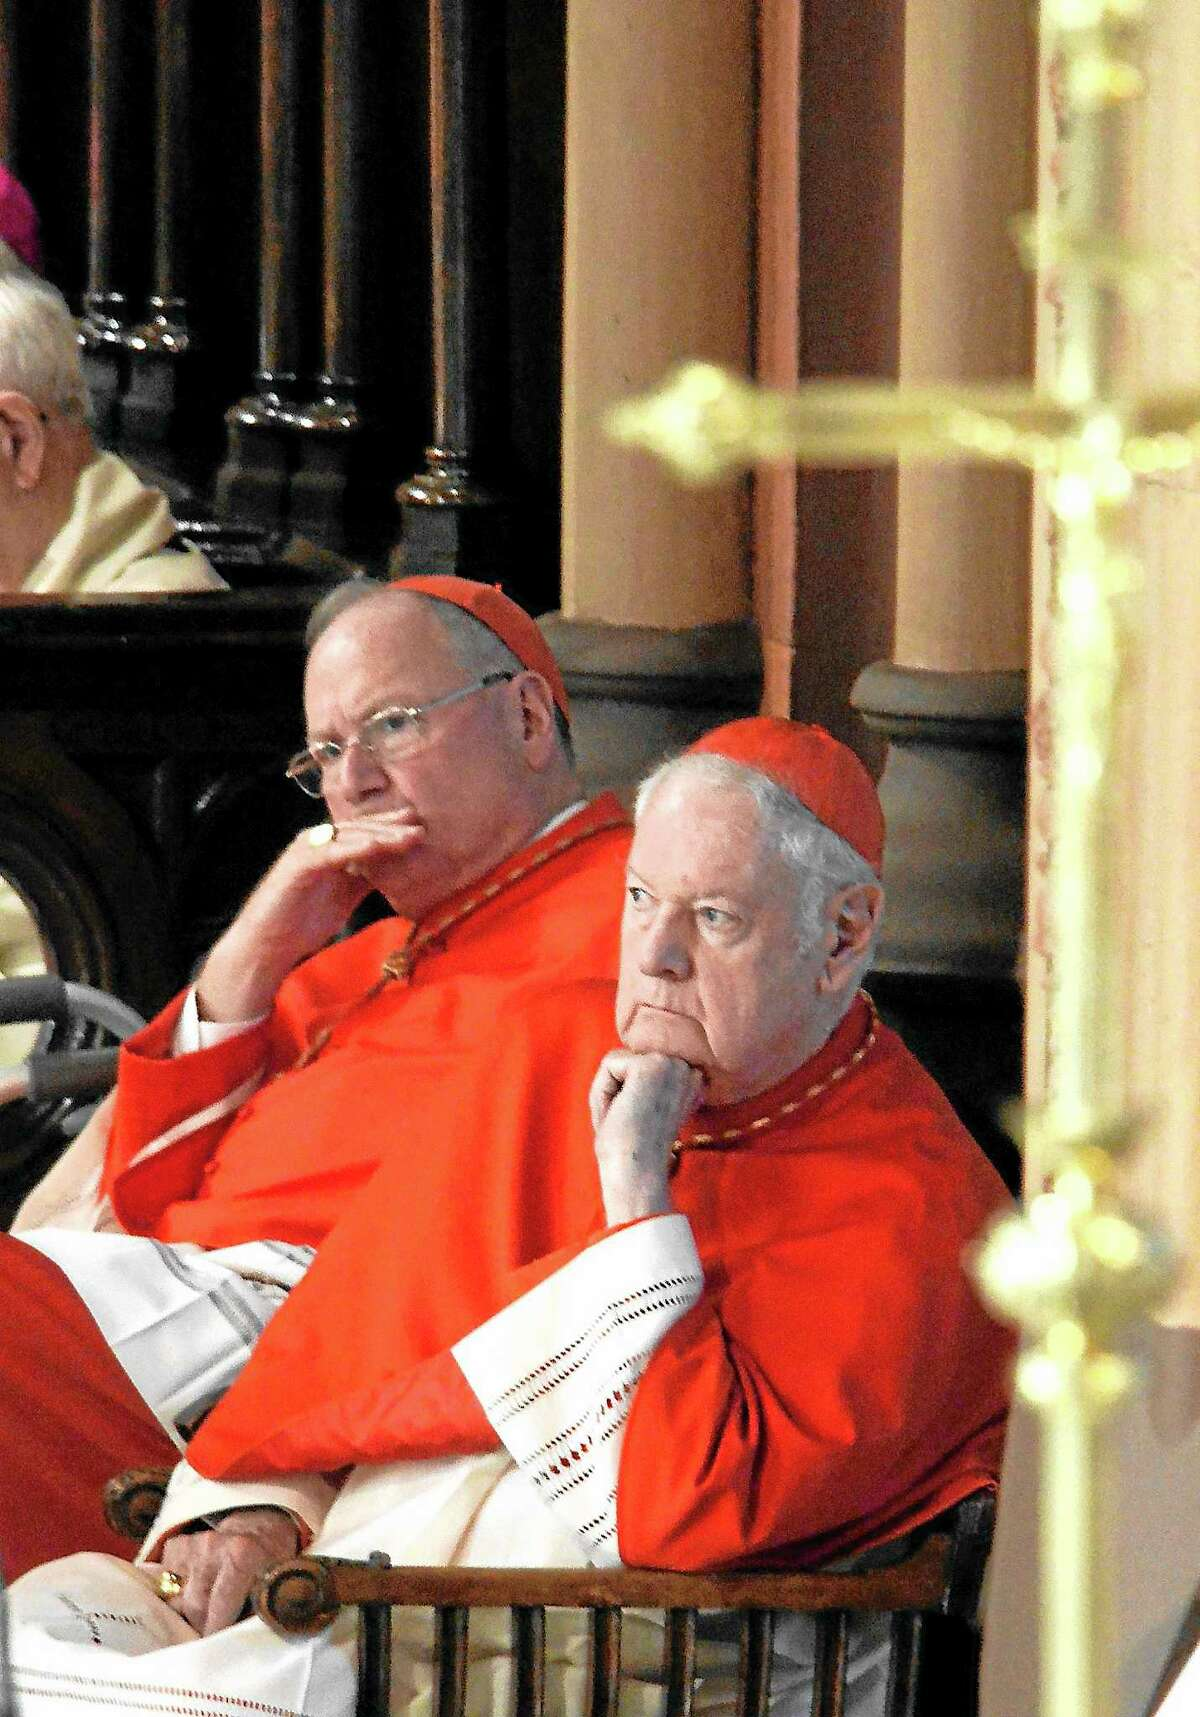 Cardinal Timothy Dolan and retired Cardinal Edward Egan listen to Hubbard in Albany on Sunday, Oct. 20, 2013 .